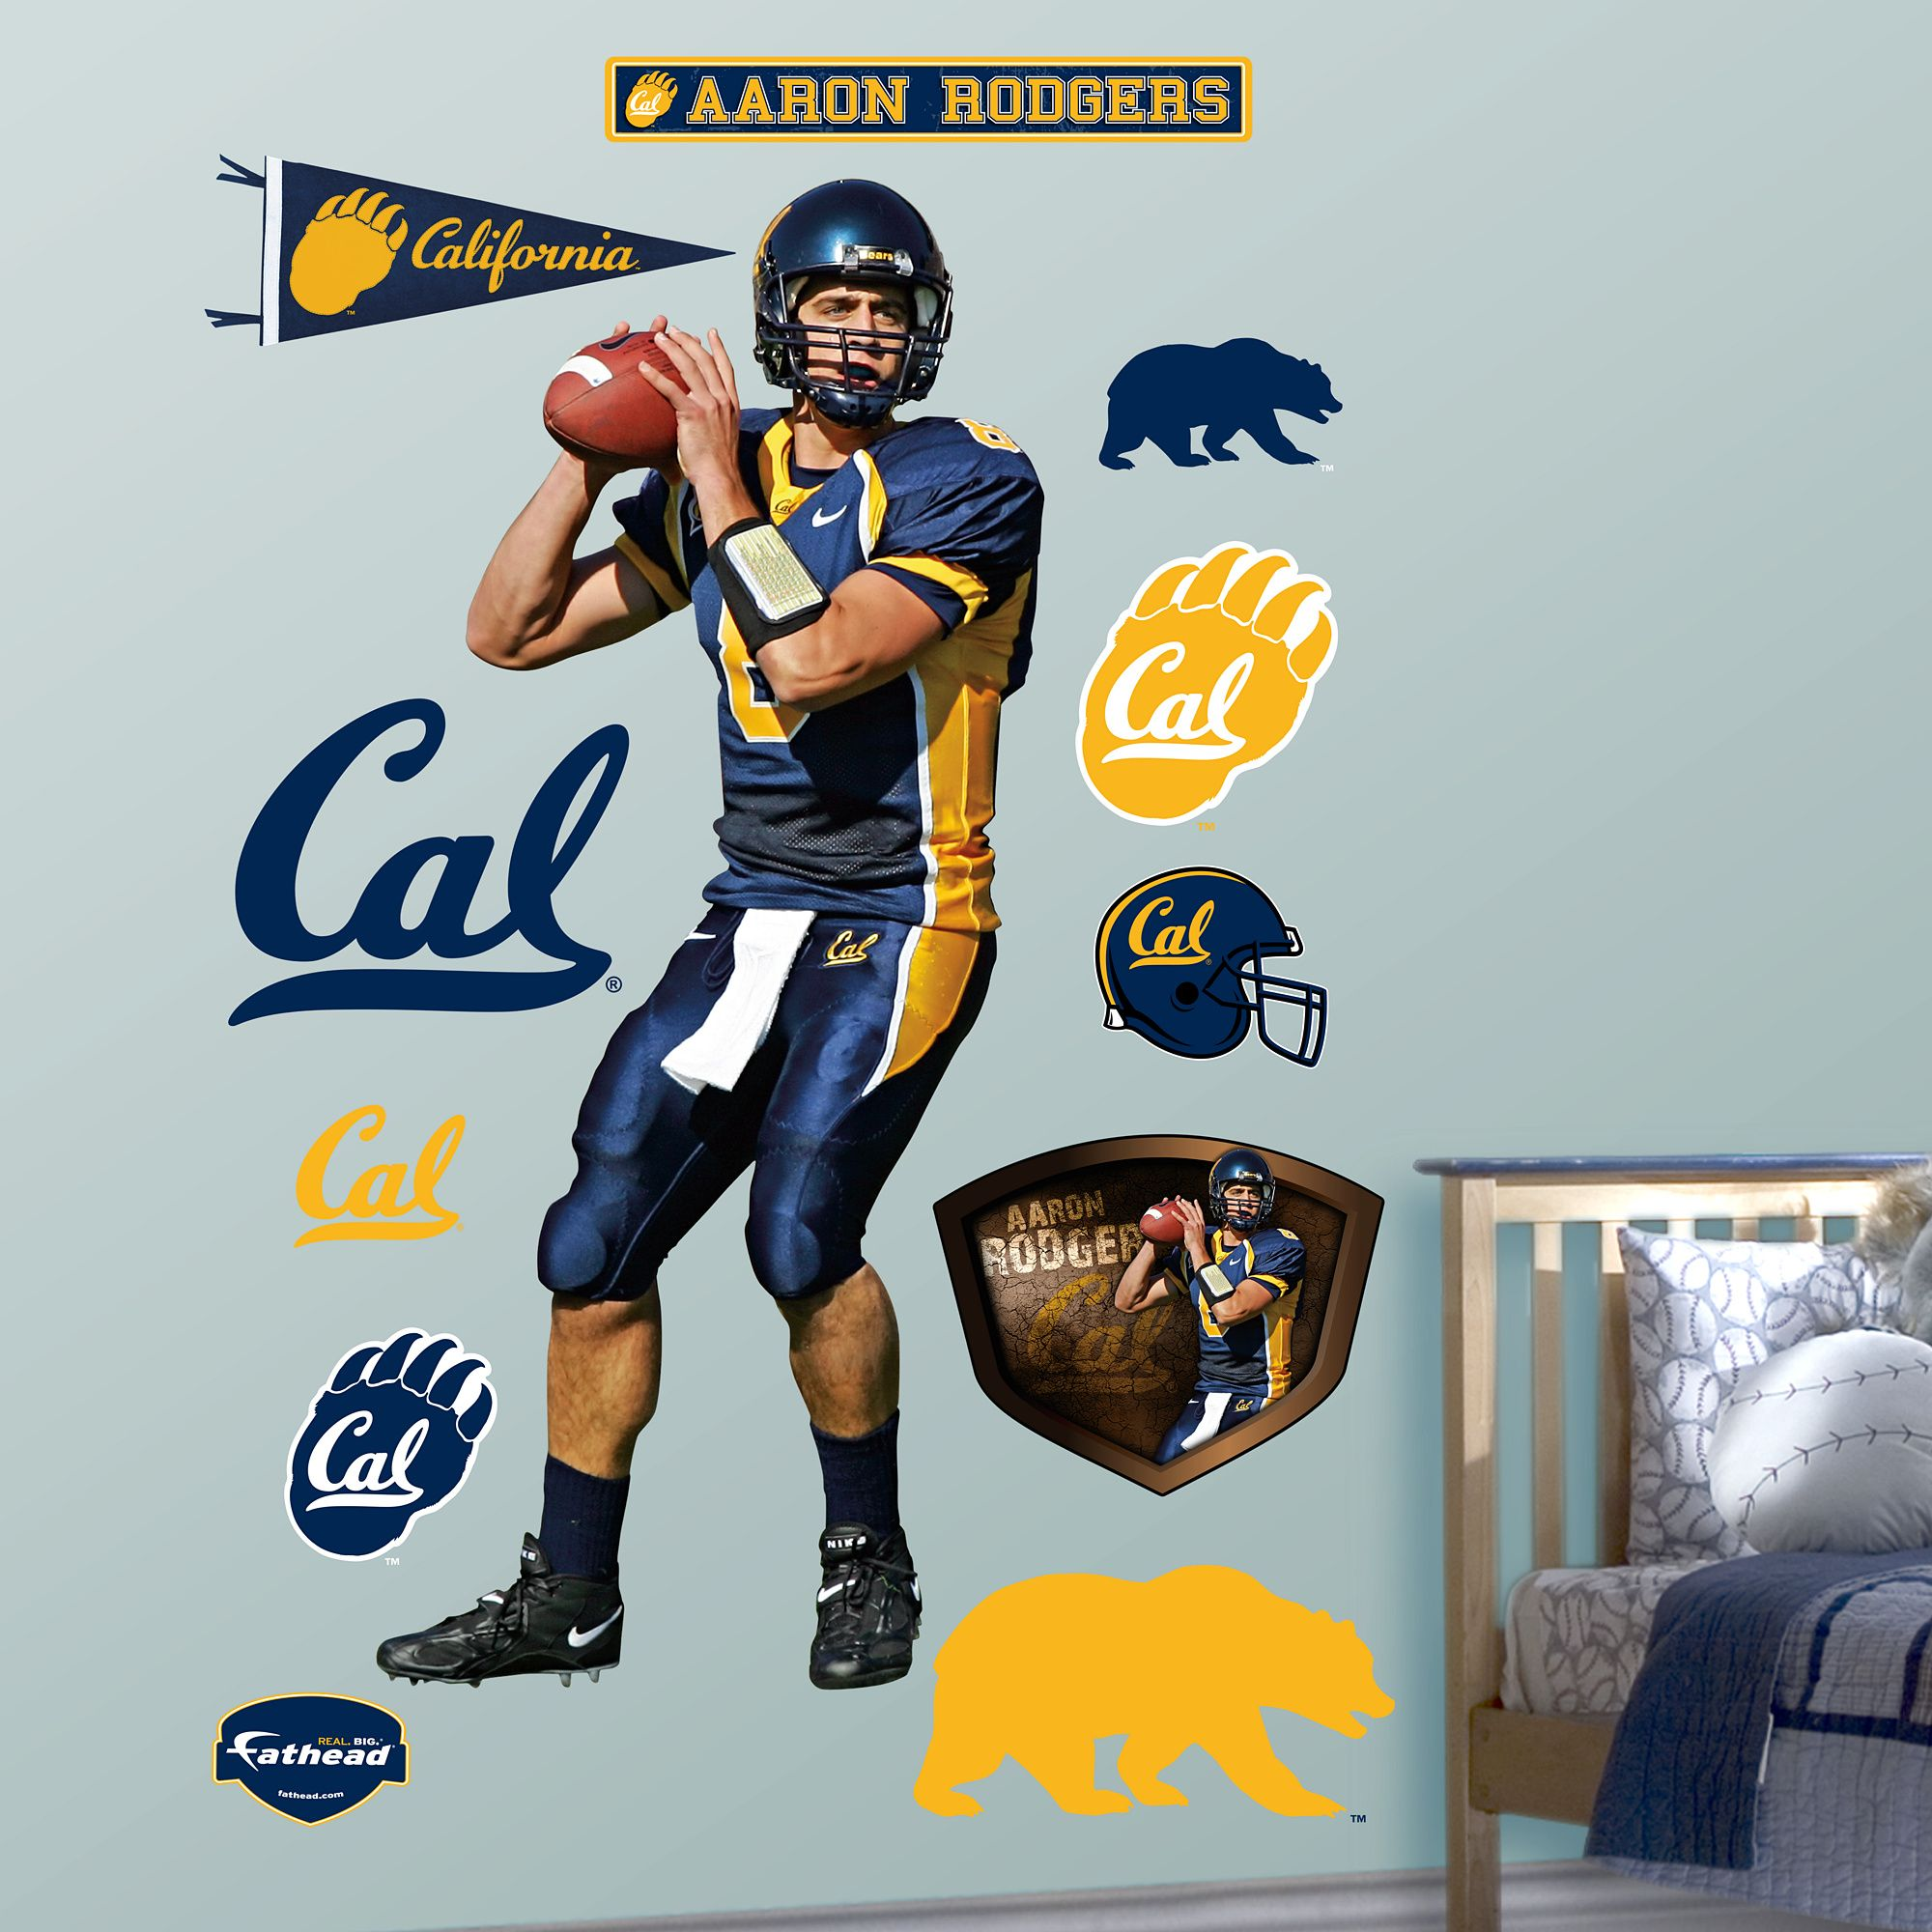 Aaron Rodgers Cal Cal Golden Bears California Golden Bears Golden Bears